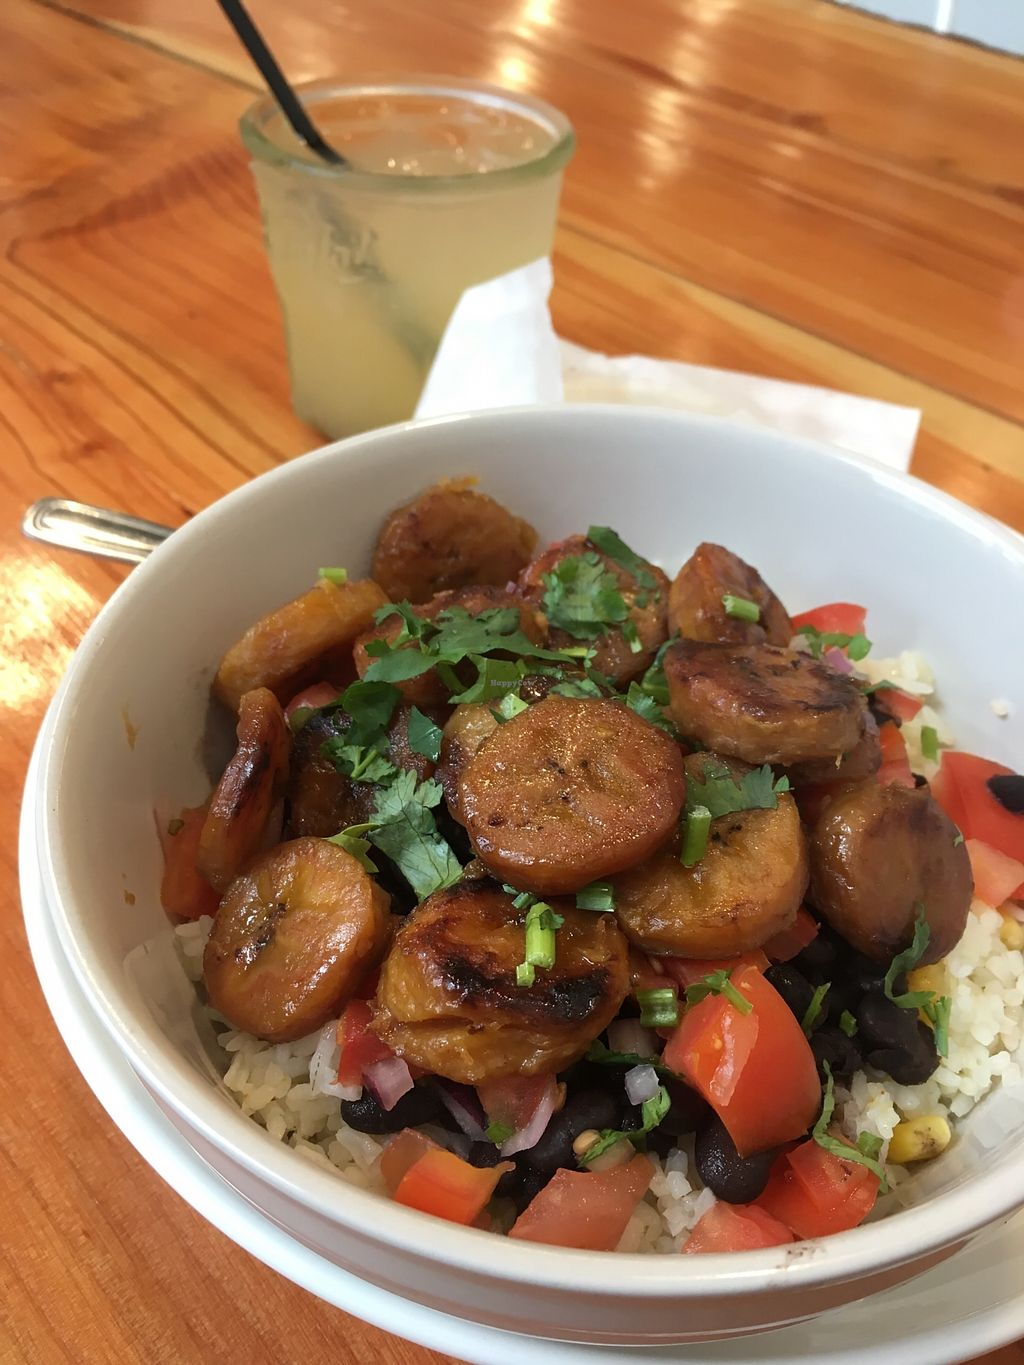 """Photo of Maizal  by <a href=""""/members/profile/jileila"""">jileila</a> <br/>Vegan Rice Bowl with Plantains <br/> November 18, 2017  - <a href='/contact/abuse/image/105427/326786'>Report</a>"""